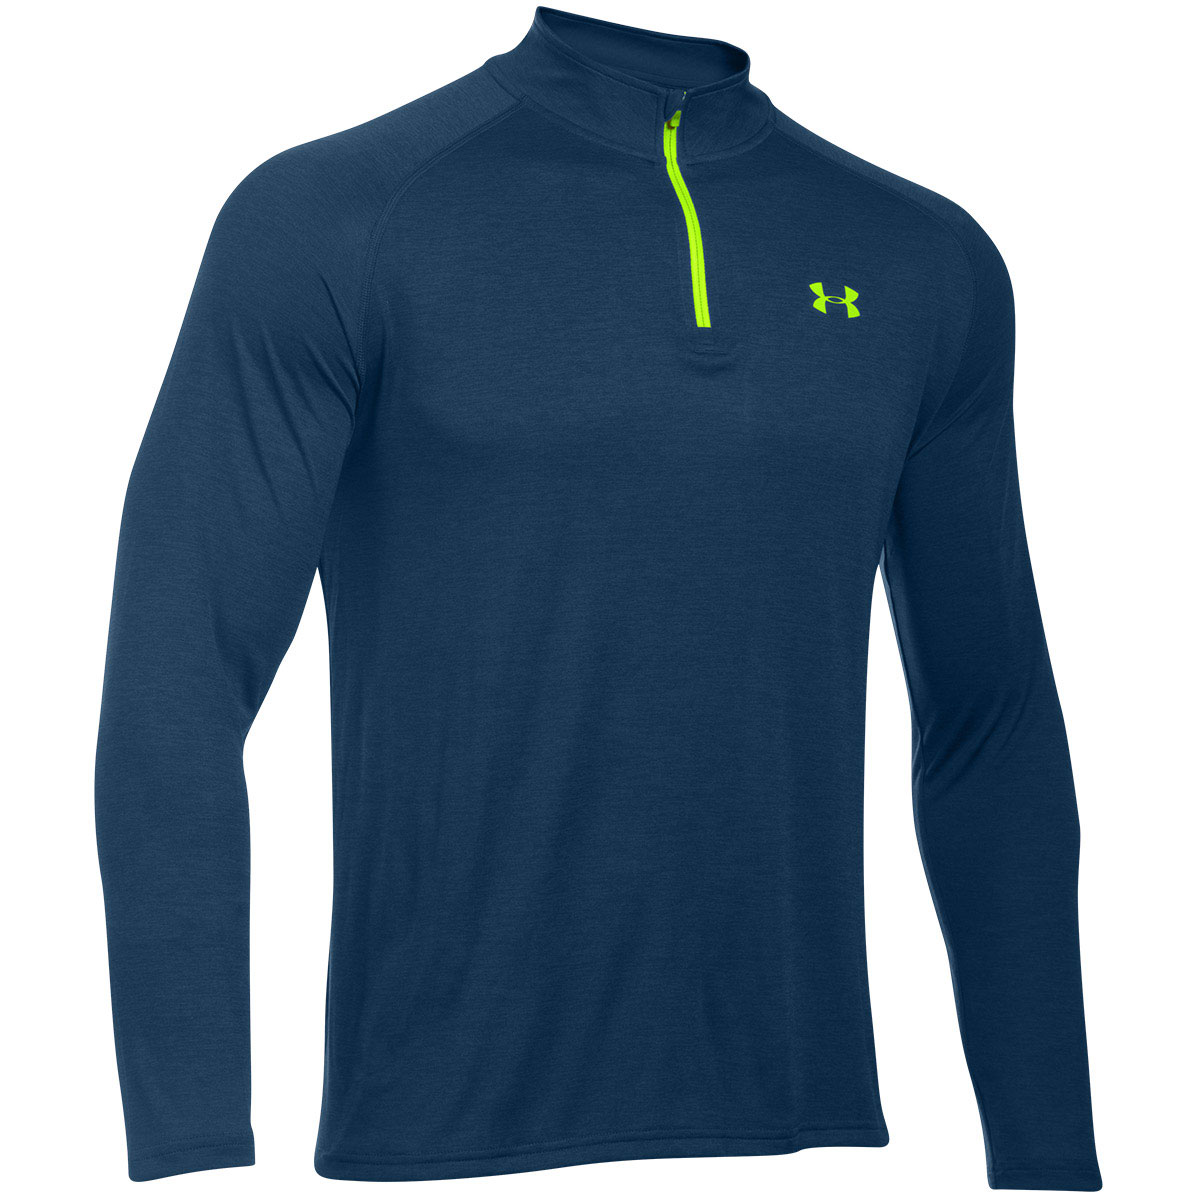 Under-Armour-Mens-UA-Tech-1-4-Zip-Long-Sleeve-Top-Workout-Layer-27-OFF-RRP thumbnail 34